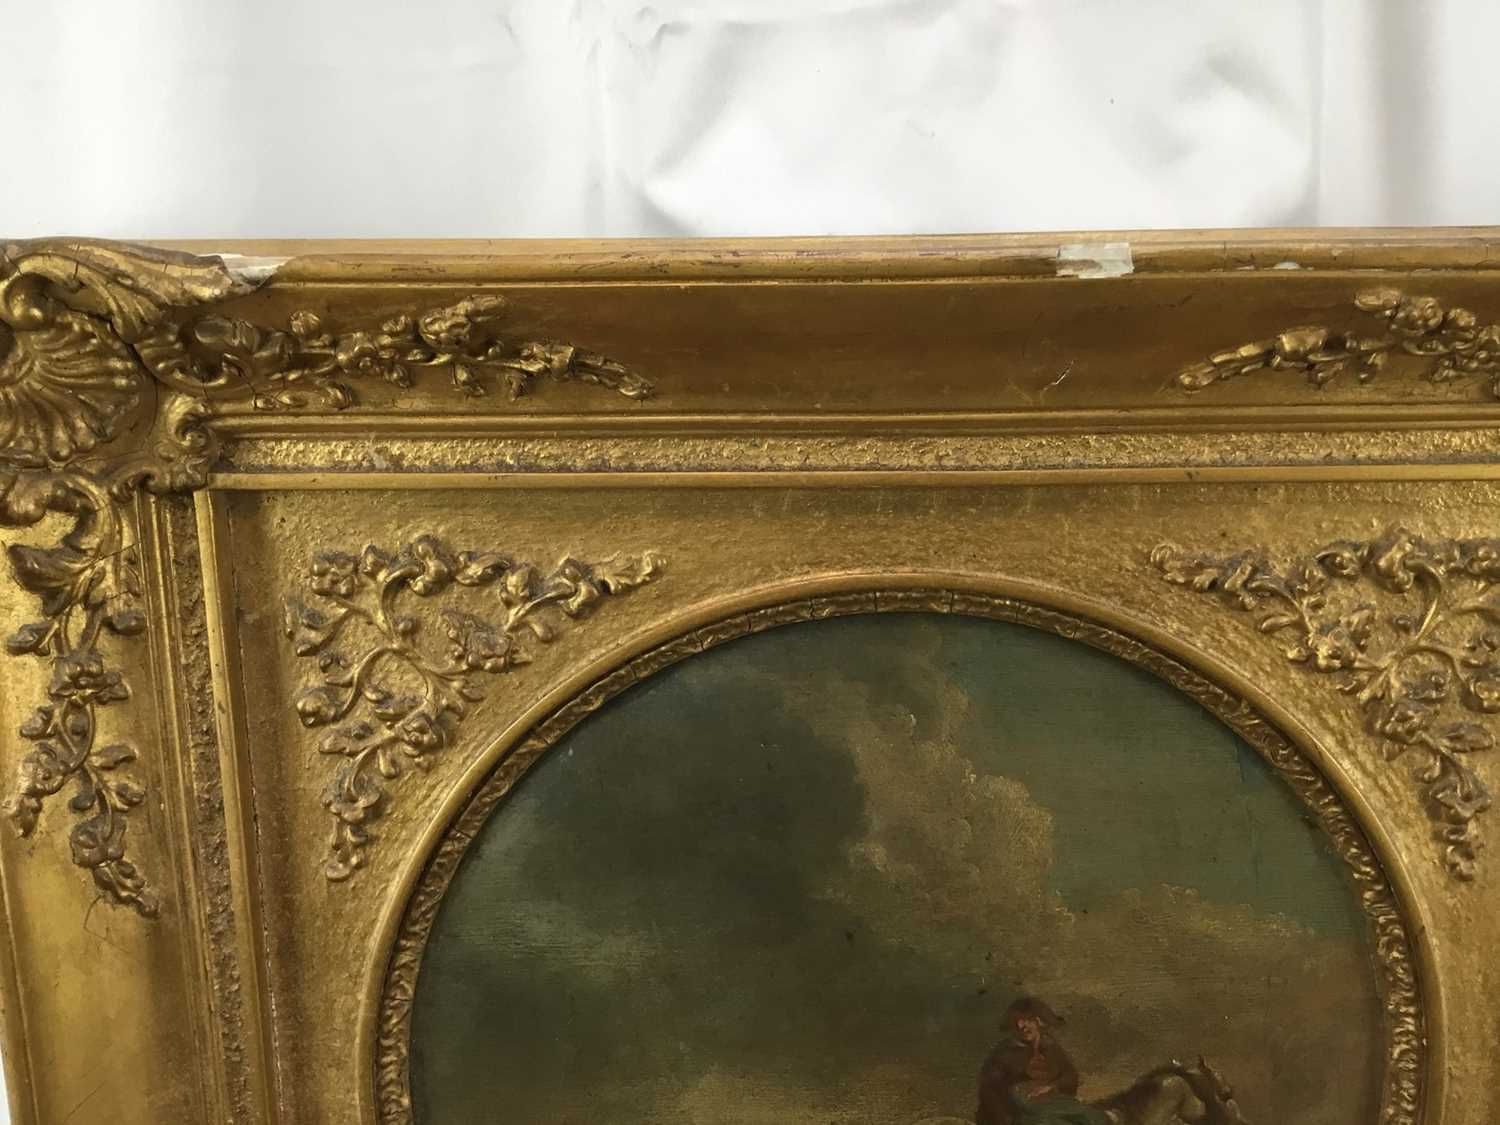 17th/18th century Dutch School oil on panel, tondo - Going to Market, inscribed verso Camphuysen, in - Image 6 of 11